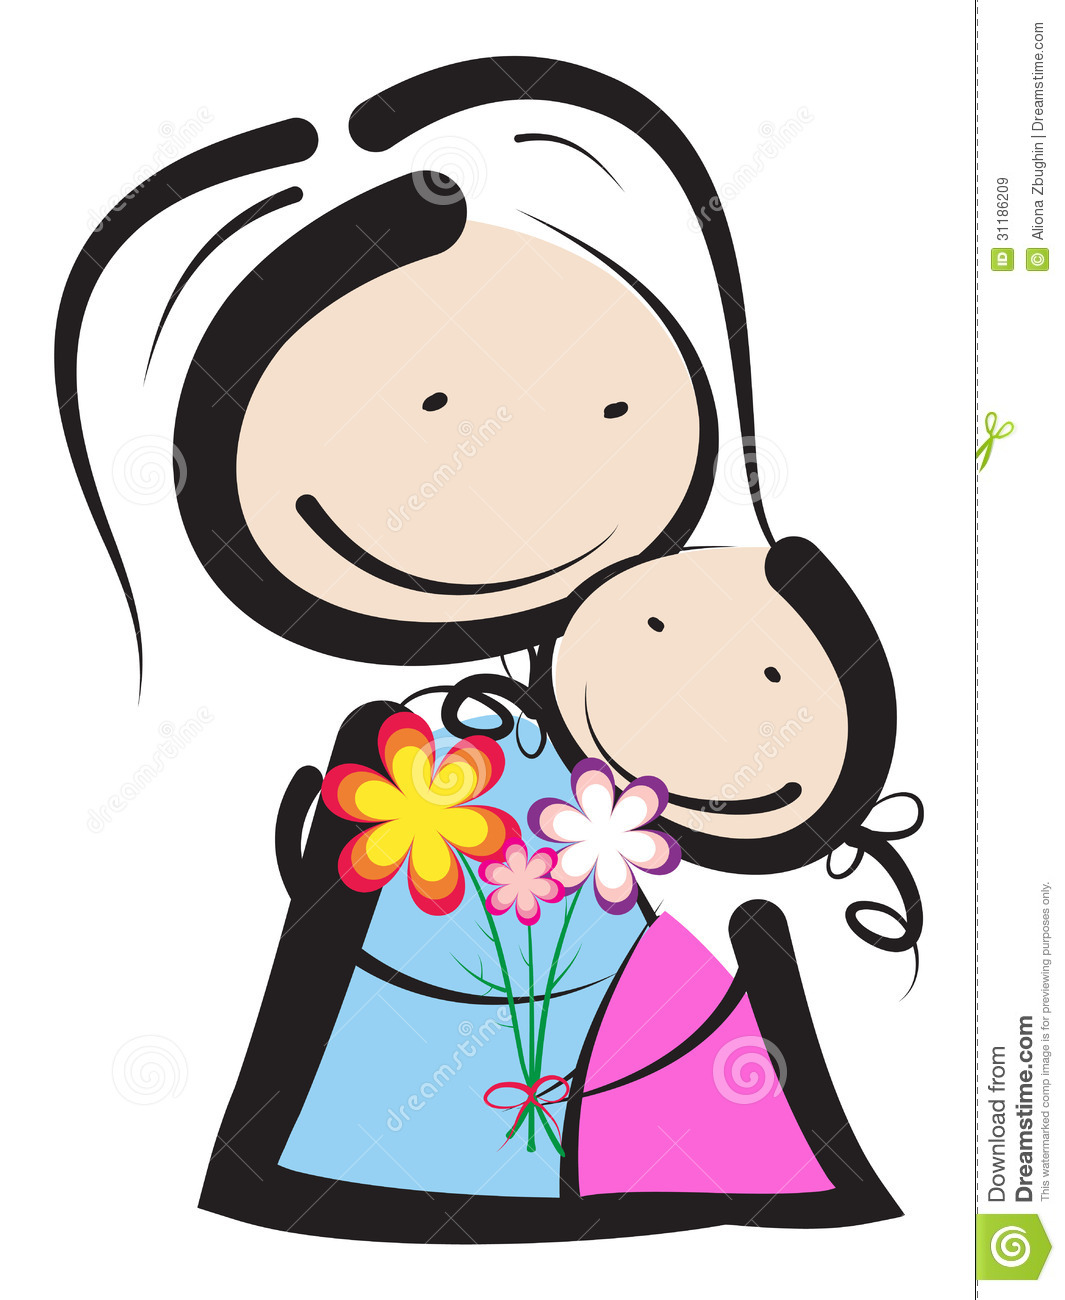 Mothers Day Royalty Free Stock Images - Image: 31186209